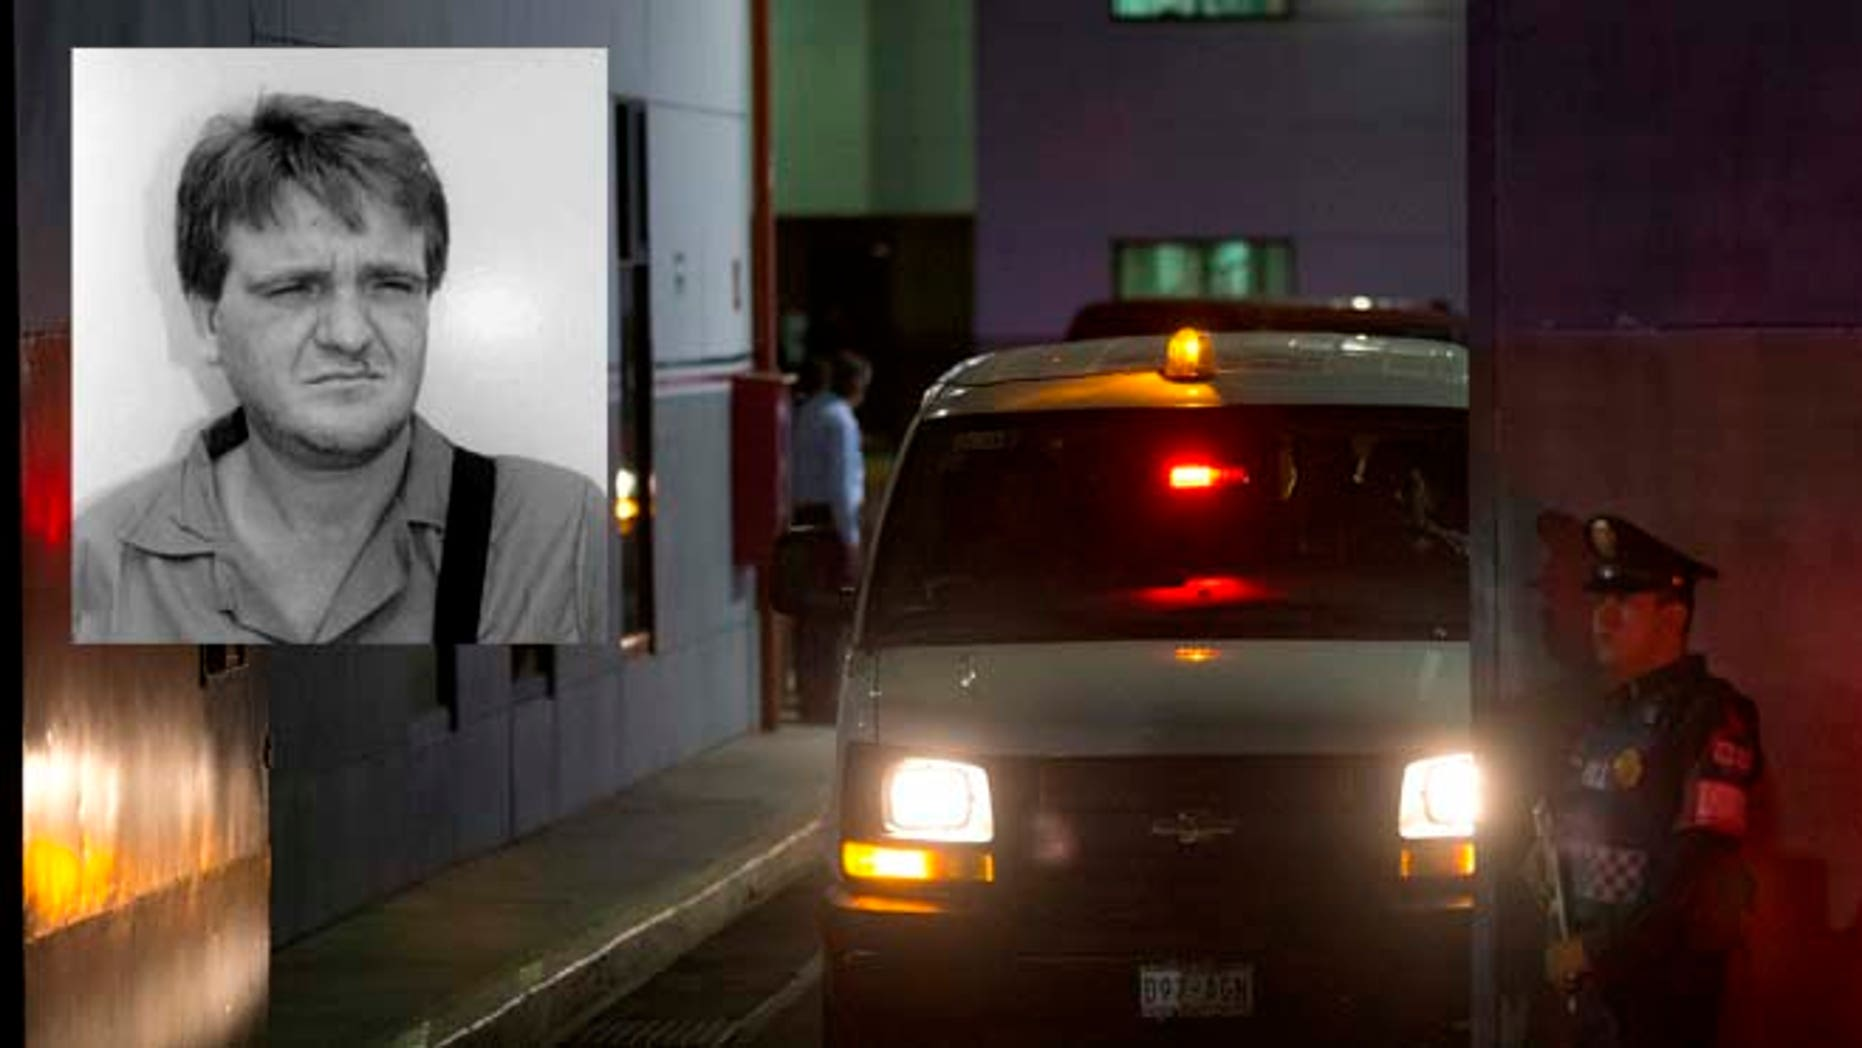 """A police officer stands guard as a vehicle leaves from the airport hangar of Mexico's Attorney General office, in Mexico City, after the arrival of drug lord Hector """"El Guero"""" Palma, Wednesday, June 15, 2016. Palma, one of the founders of the Sinaloa Cartel, returned to his native country Wednesday after serving almost a decade in a U.S. prison. U.S. authorities handed over Palma in Matamoros, across the border from Brownsville, Texas, before flying him to Mexico City for transfer to Altiplano maximum security prison.(AP Photo/Rebecca Blackwell)"""